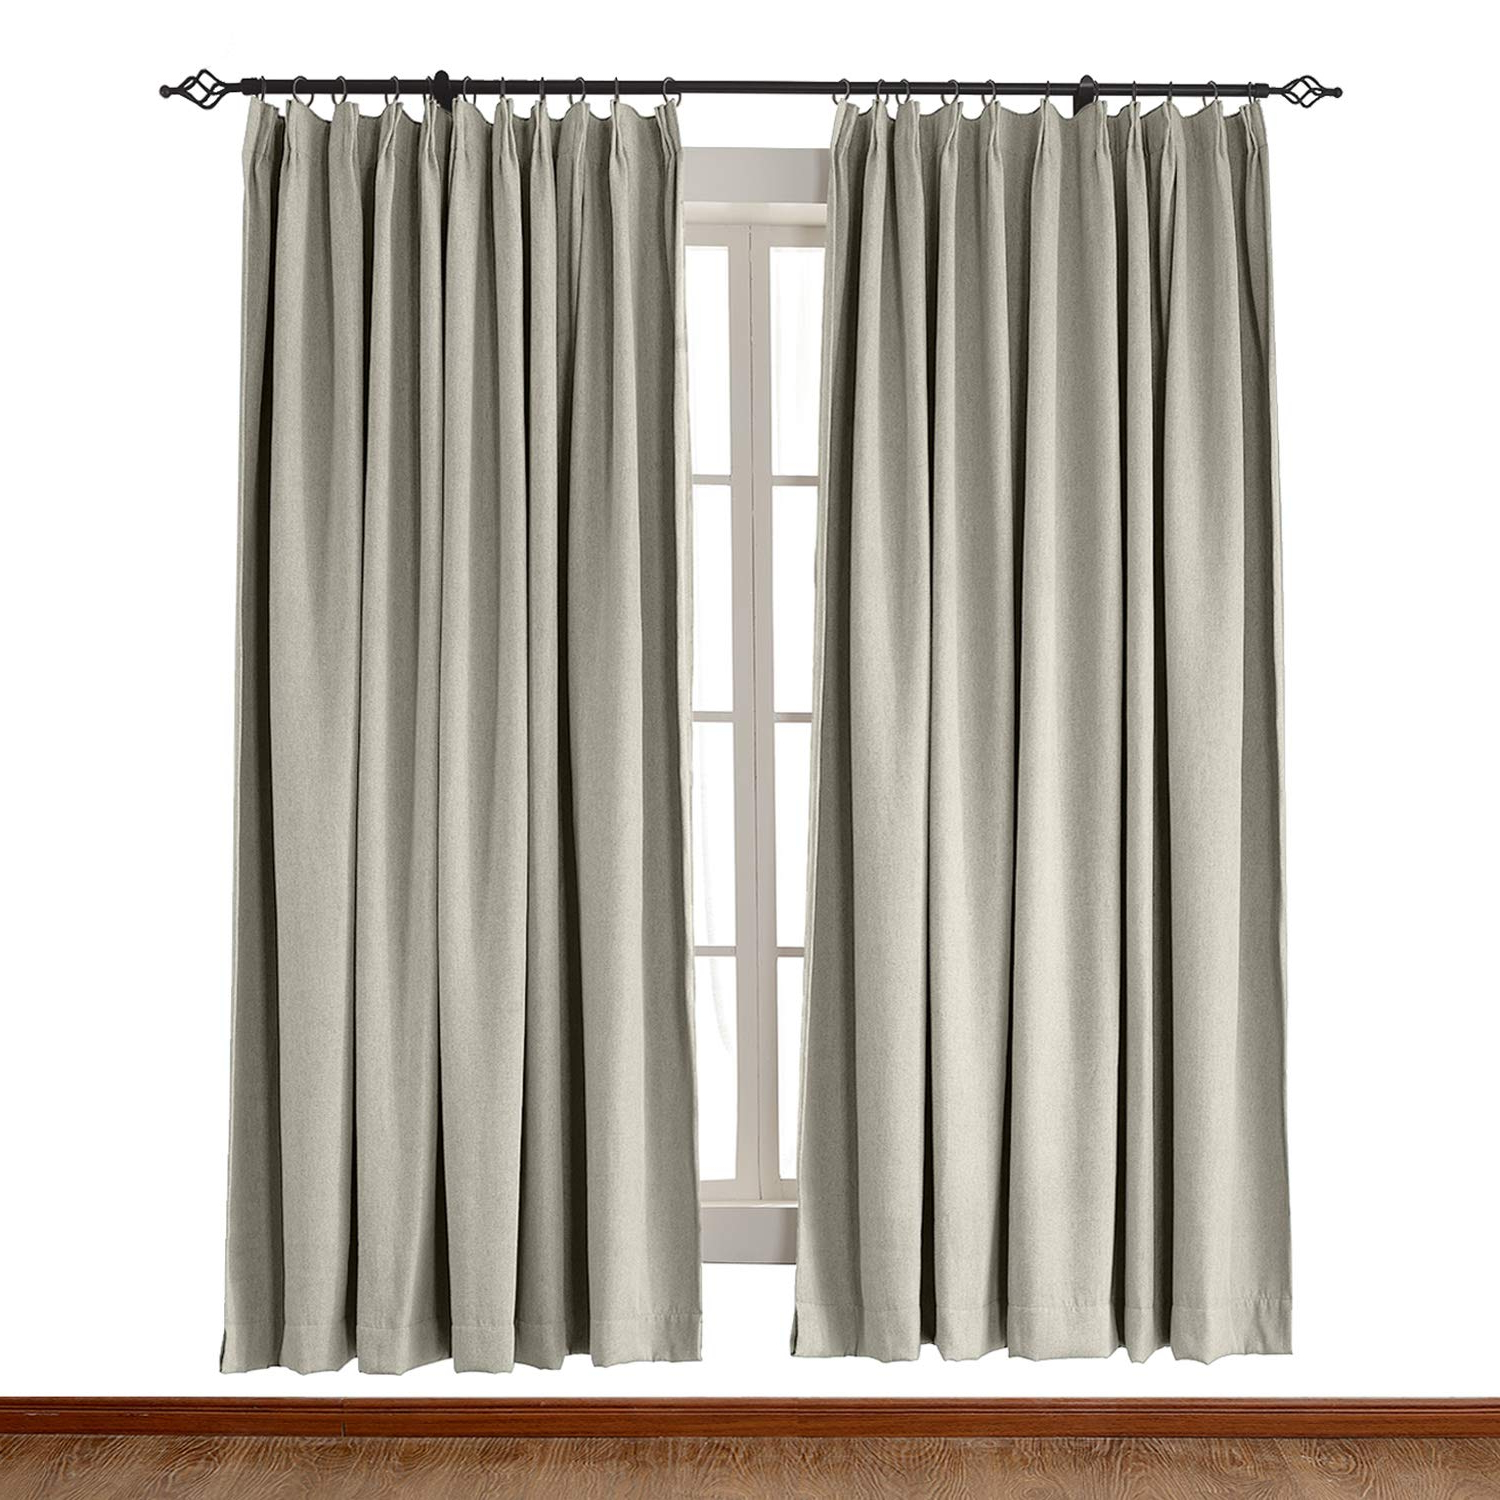 "Chadmade Heavyweight Luxury Faux Linen Curtain Pinch Pleat Drapery Panel  For Traverse Rod Ring Clip Or Track (1 Panel) In 50"" W X 63"" L Rock White For Most Recently Released Luxury Collection Faux Leather Blackout Single Curtain Panels (View 2 of 20)"